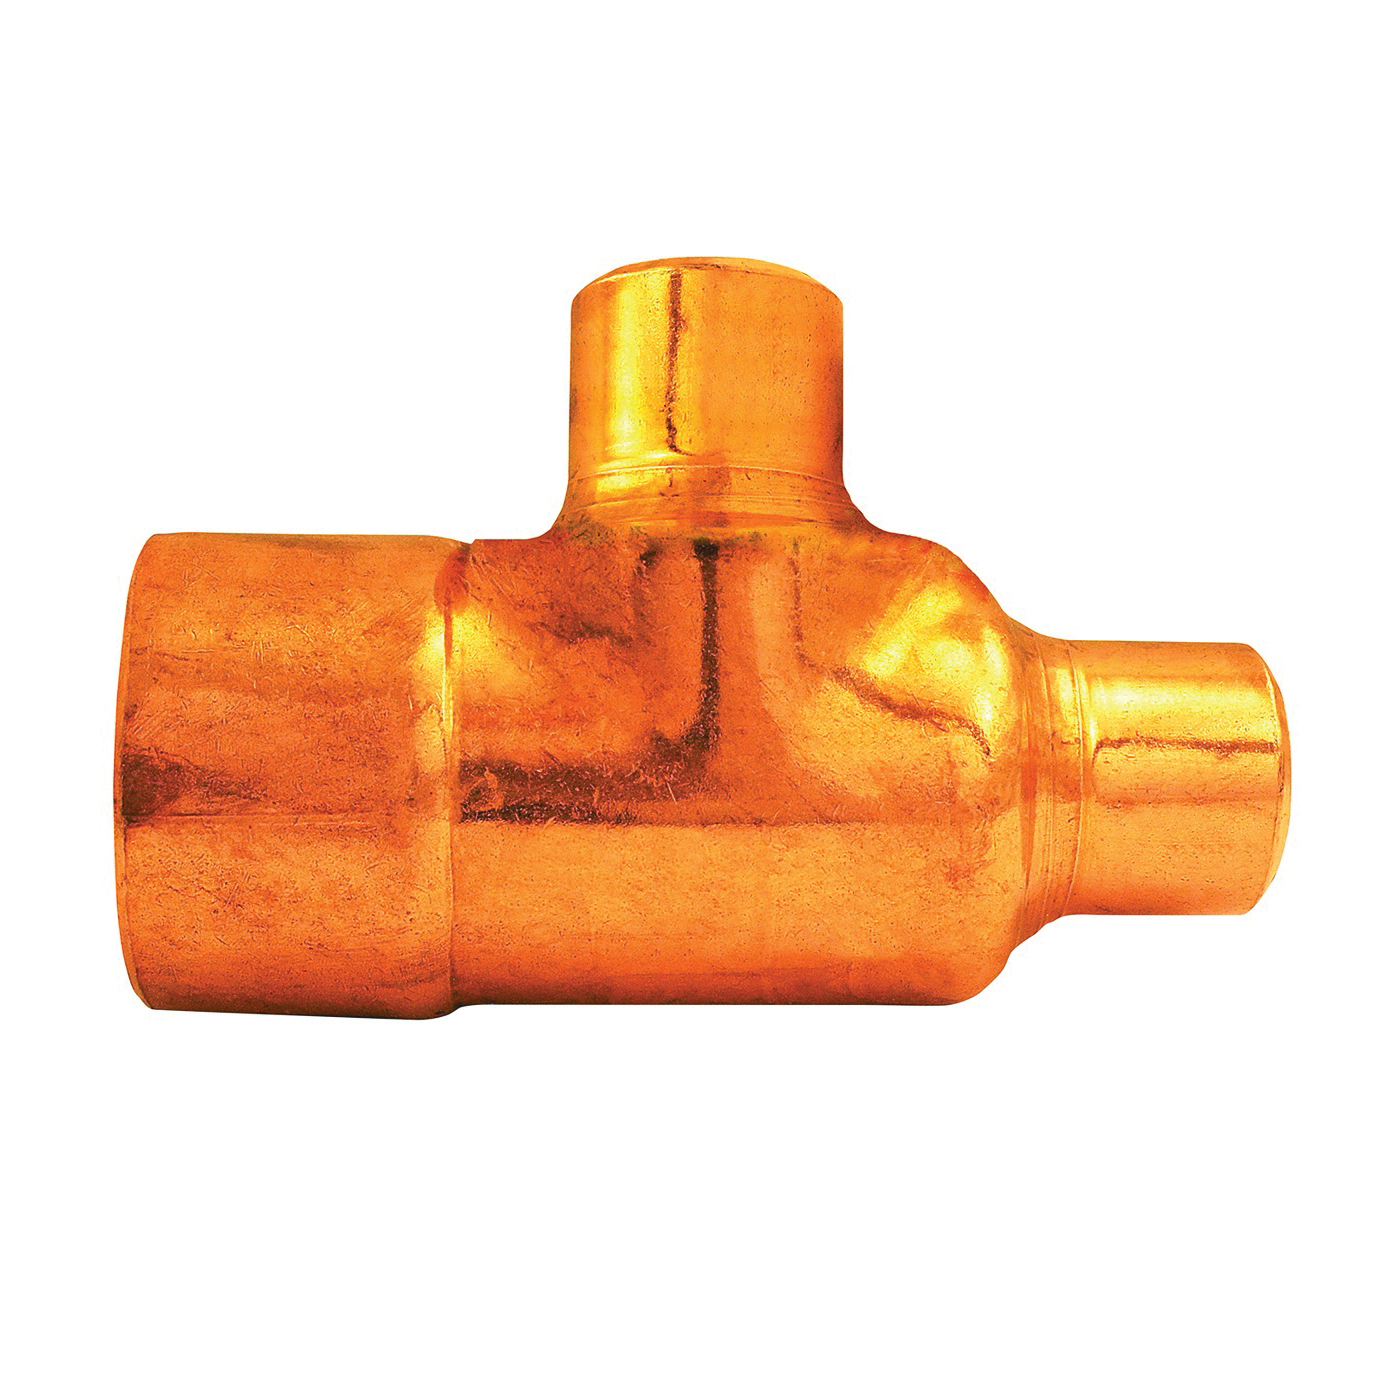 Picture of EPC 111R Series 32838 Pipe Reducing Tee, 1 x 3/4 x 3/4 in, Sweat, Copper